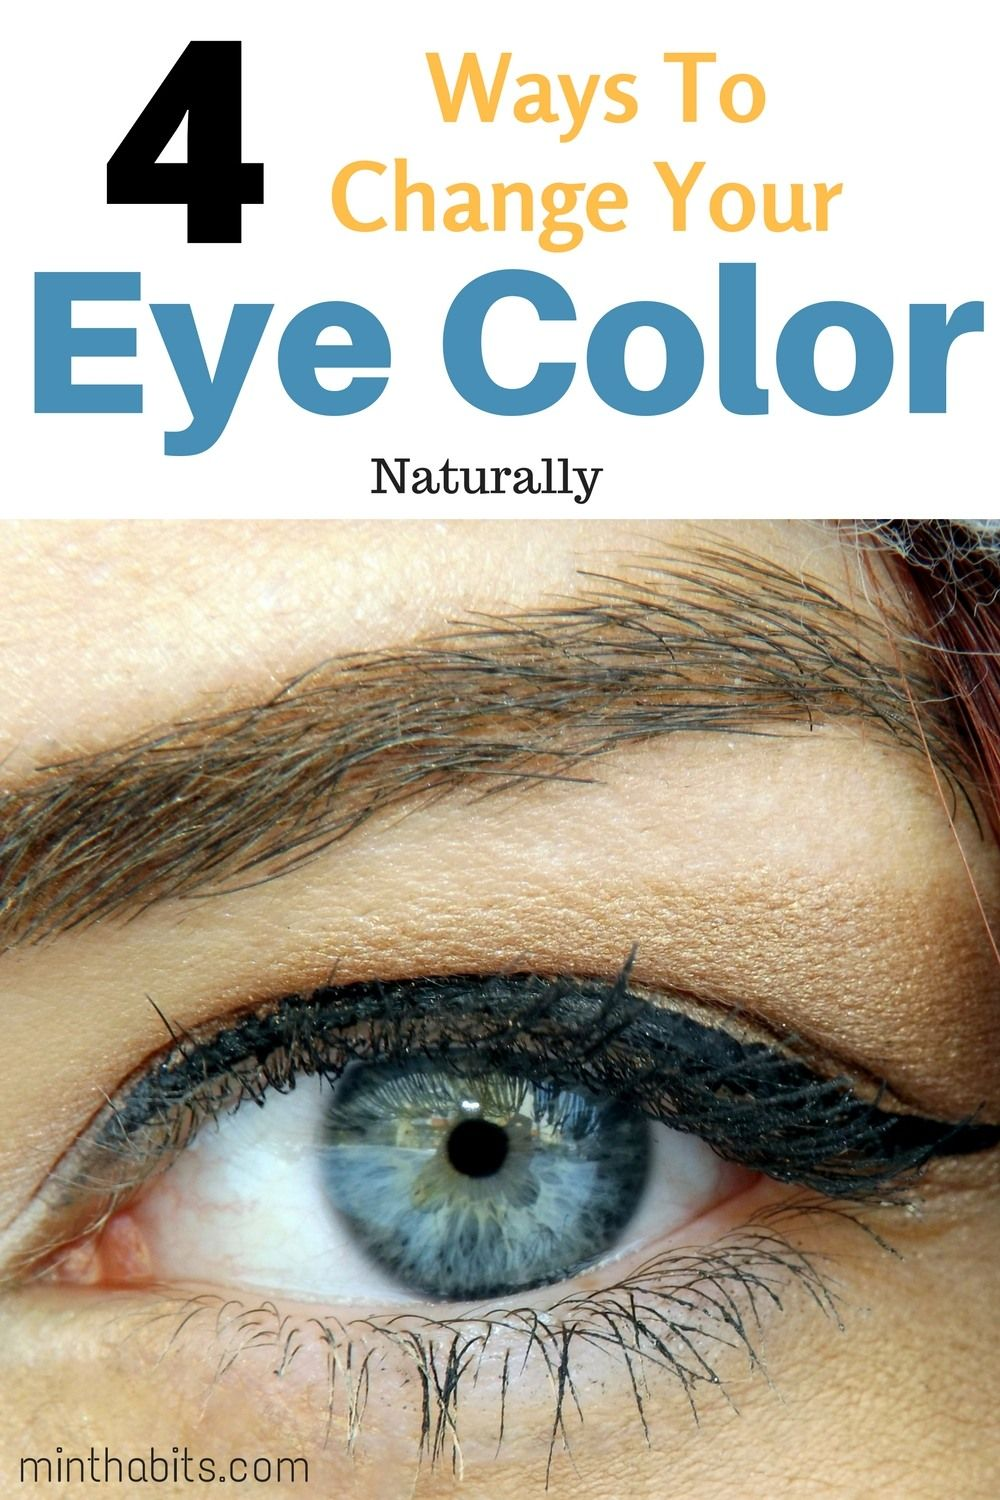 How to naturally change your eye color to green